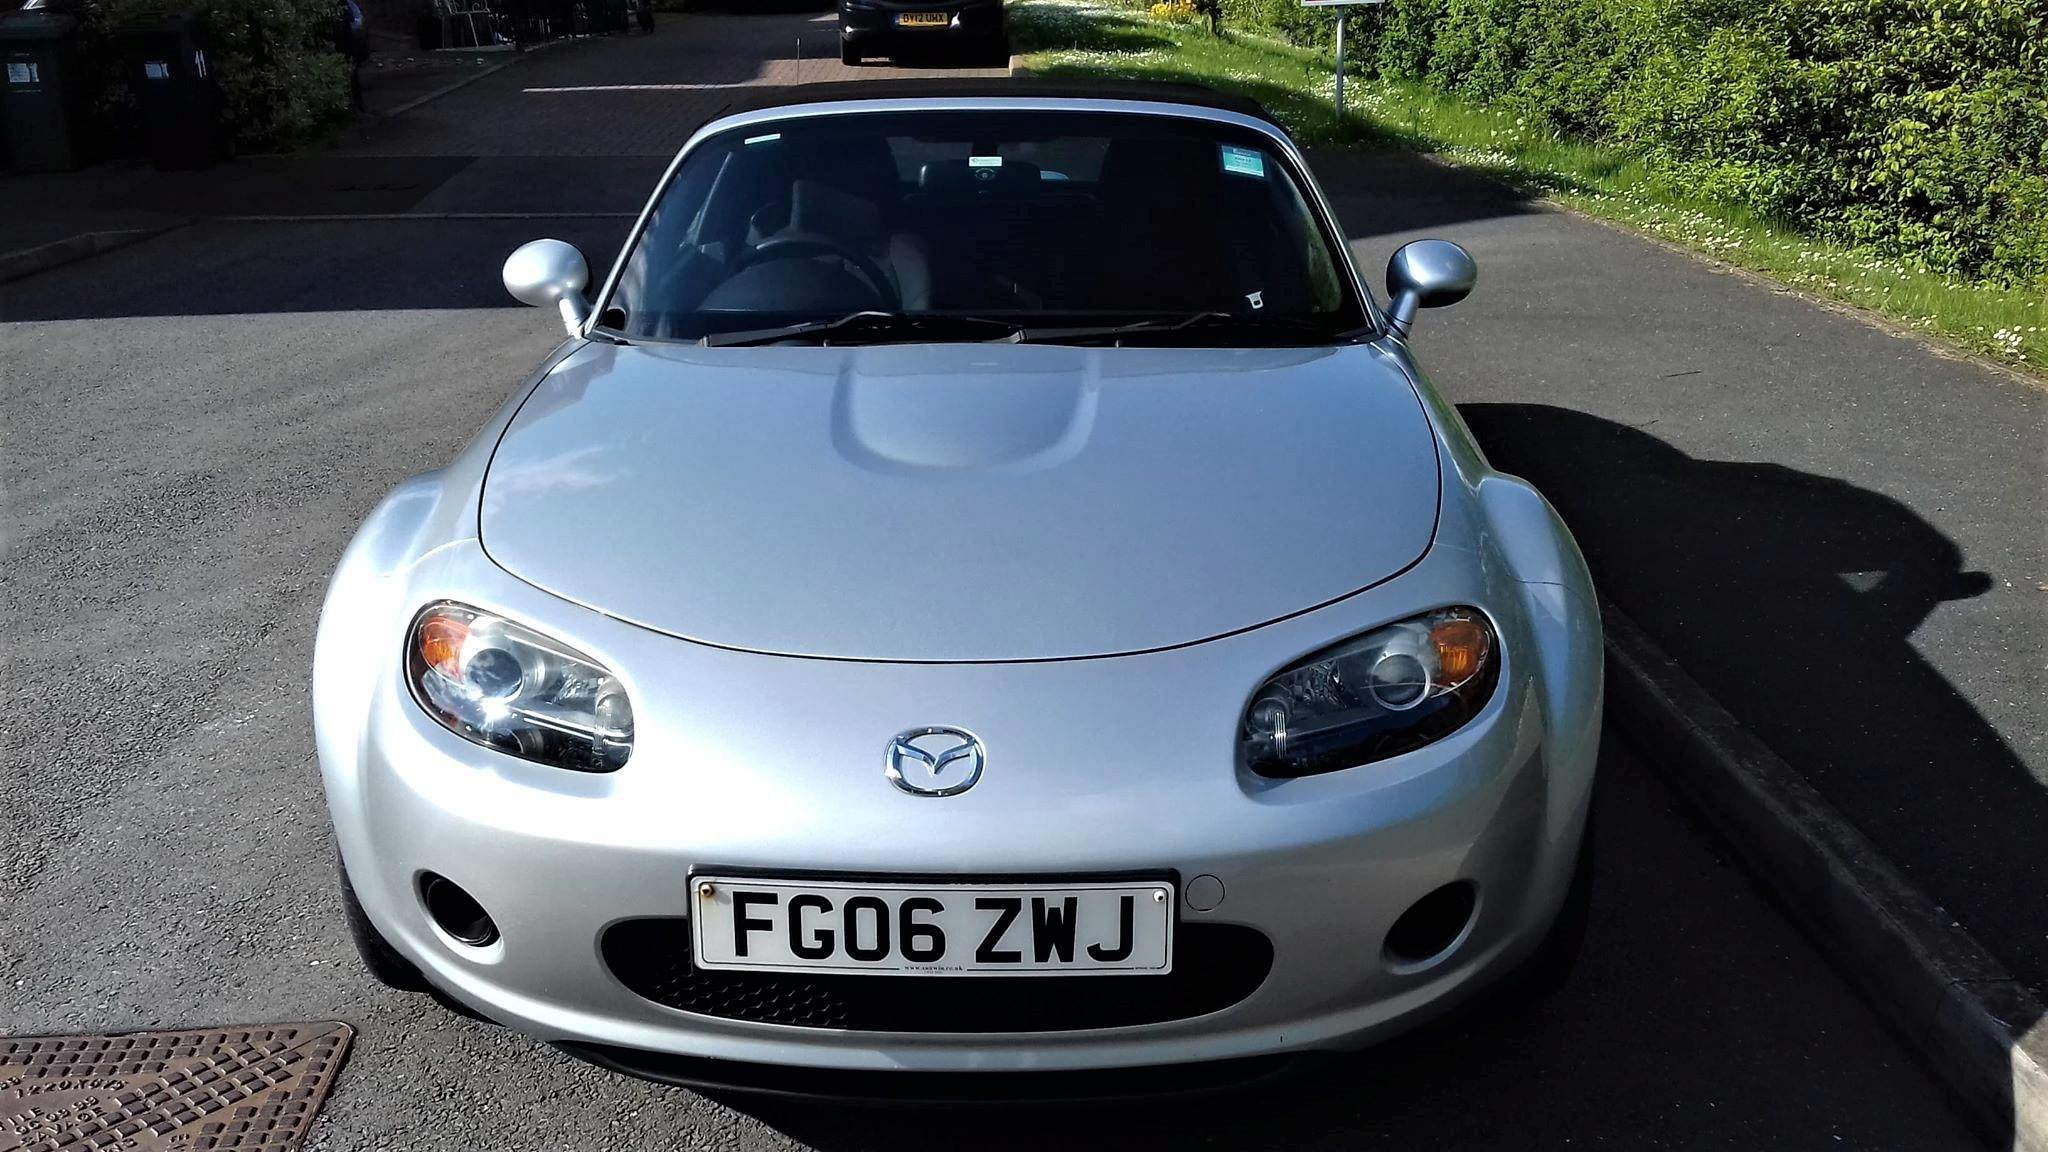 2006 Mazda MX-5 1.8 option pack For Sale (picture 3 of 6)